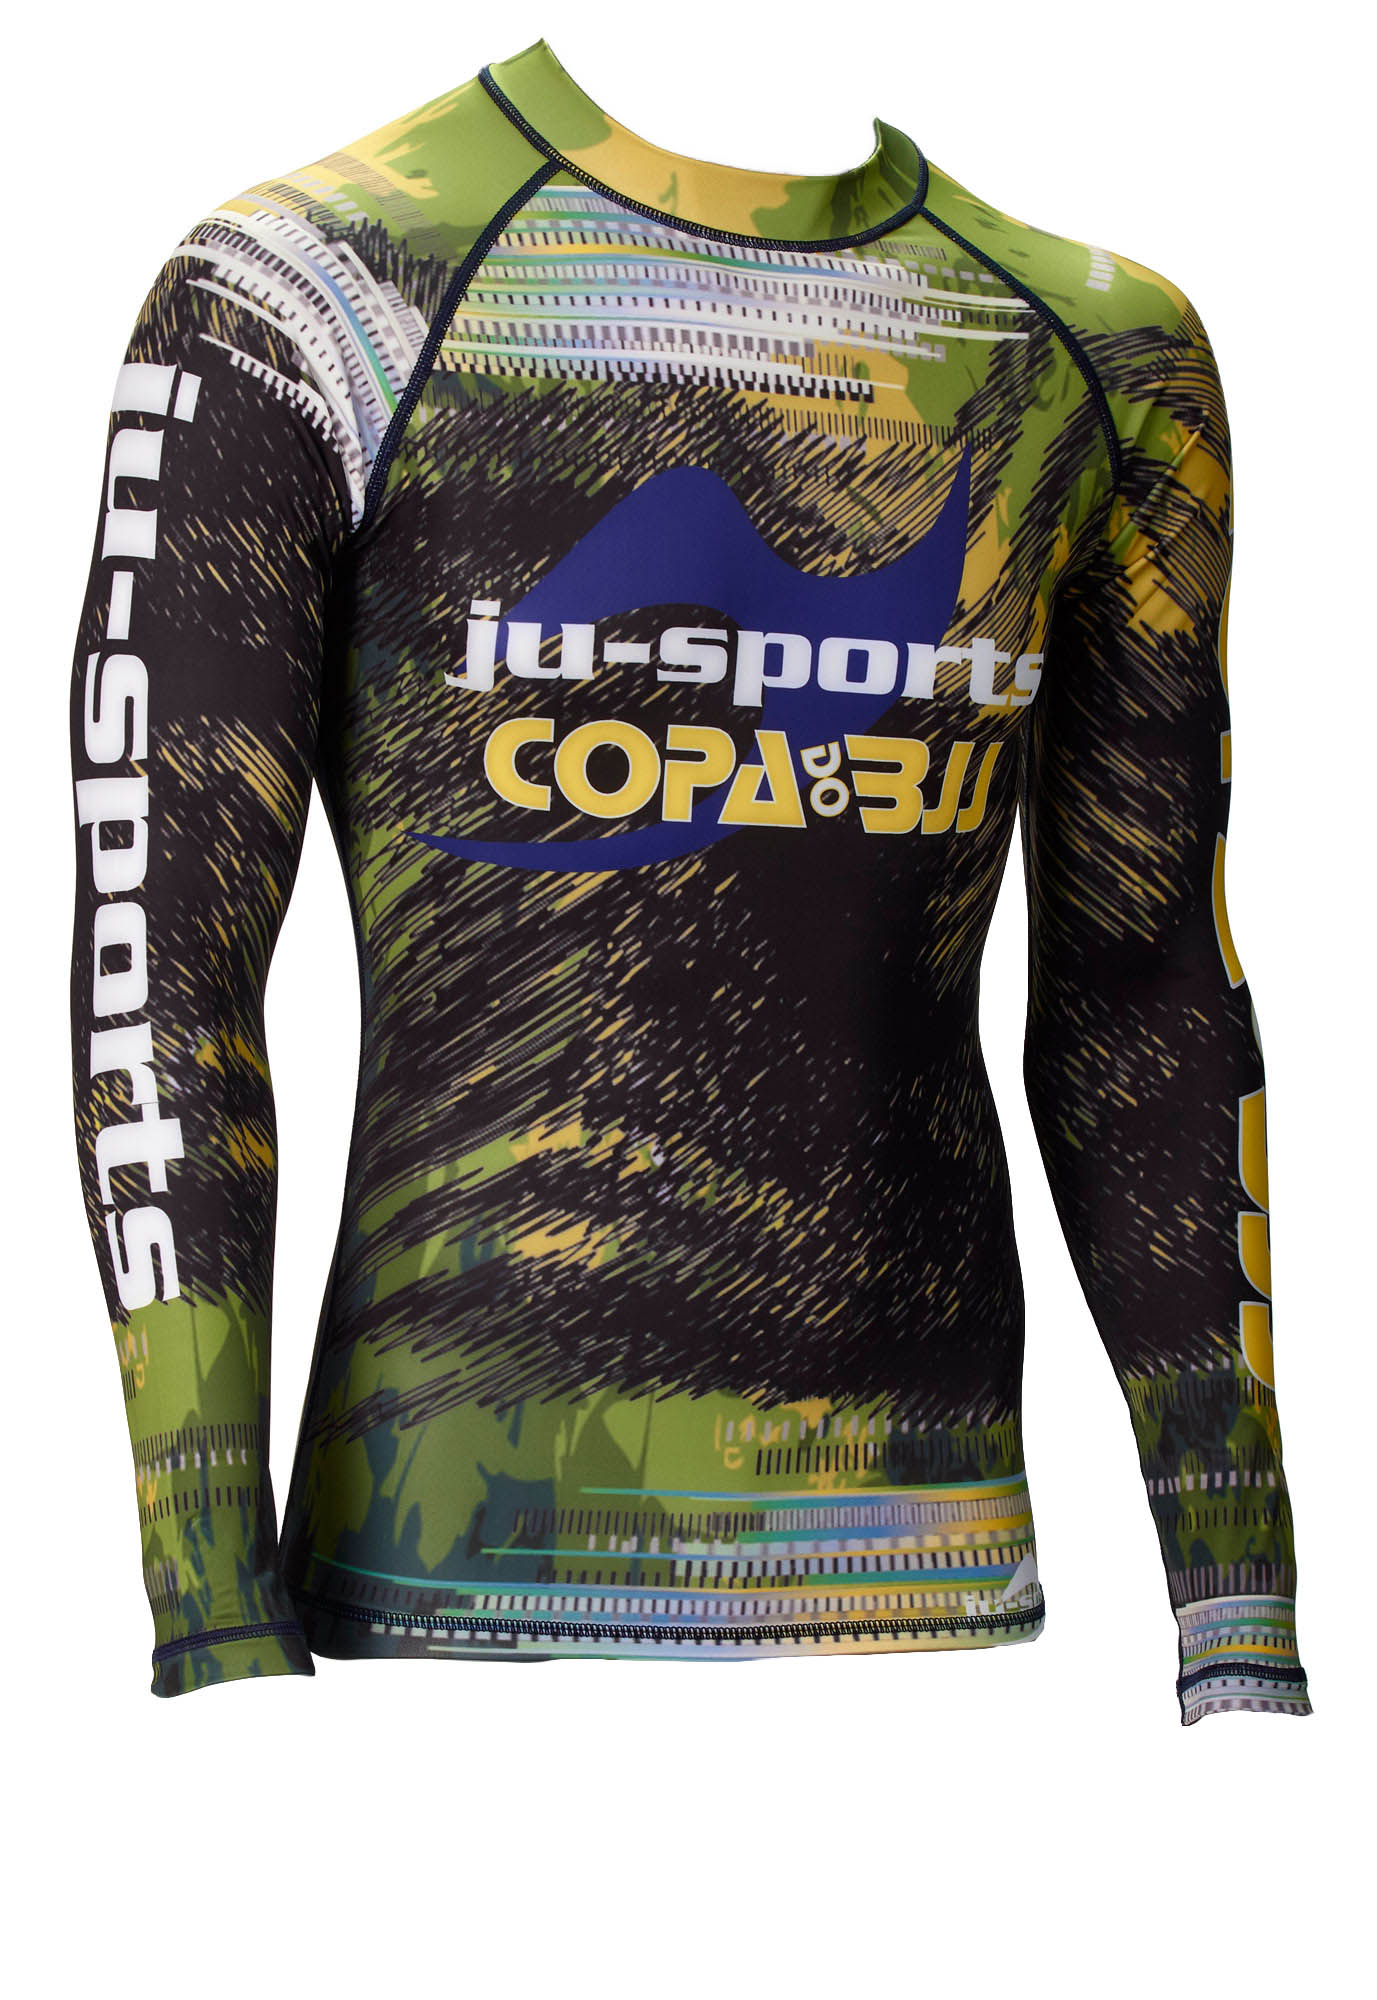 Limited Edition Rash Guard 'Copa do BJJ'